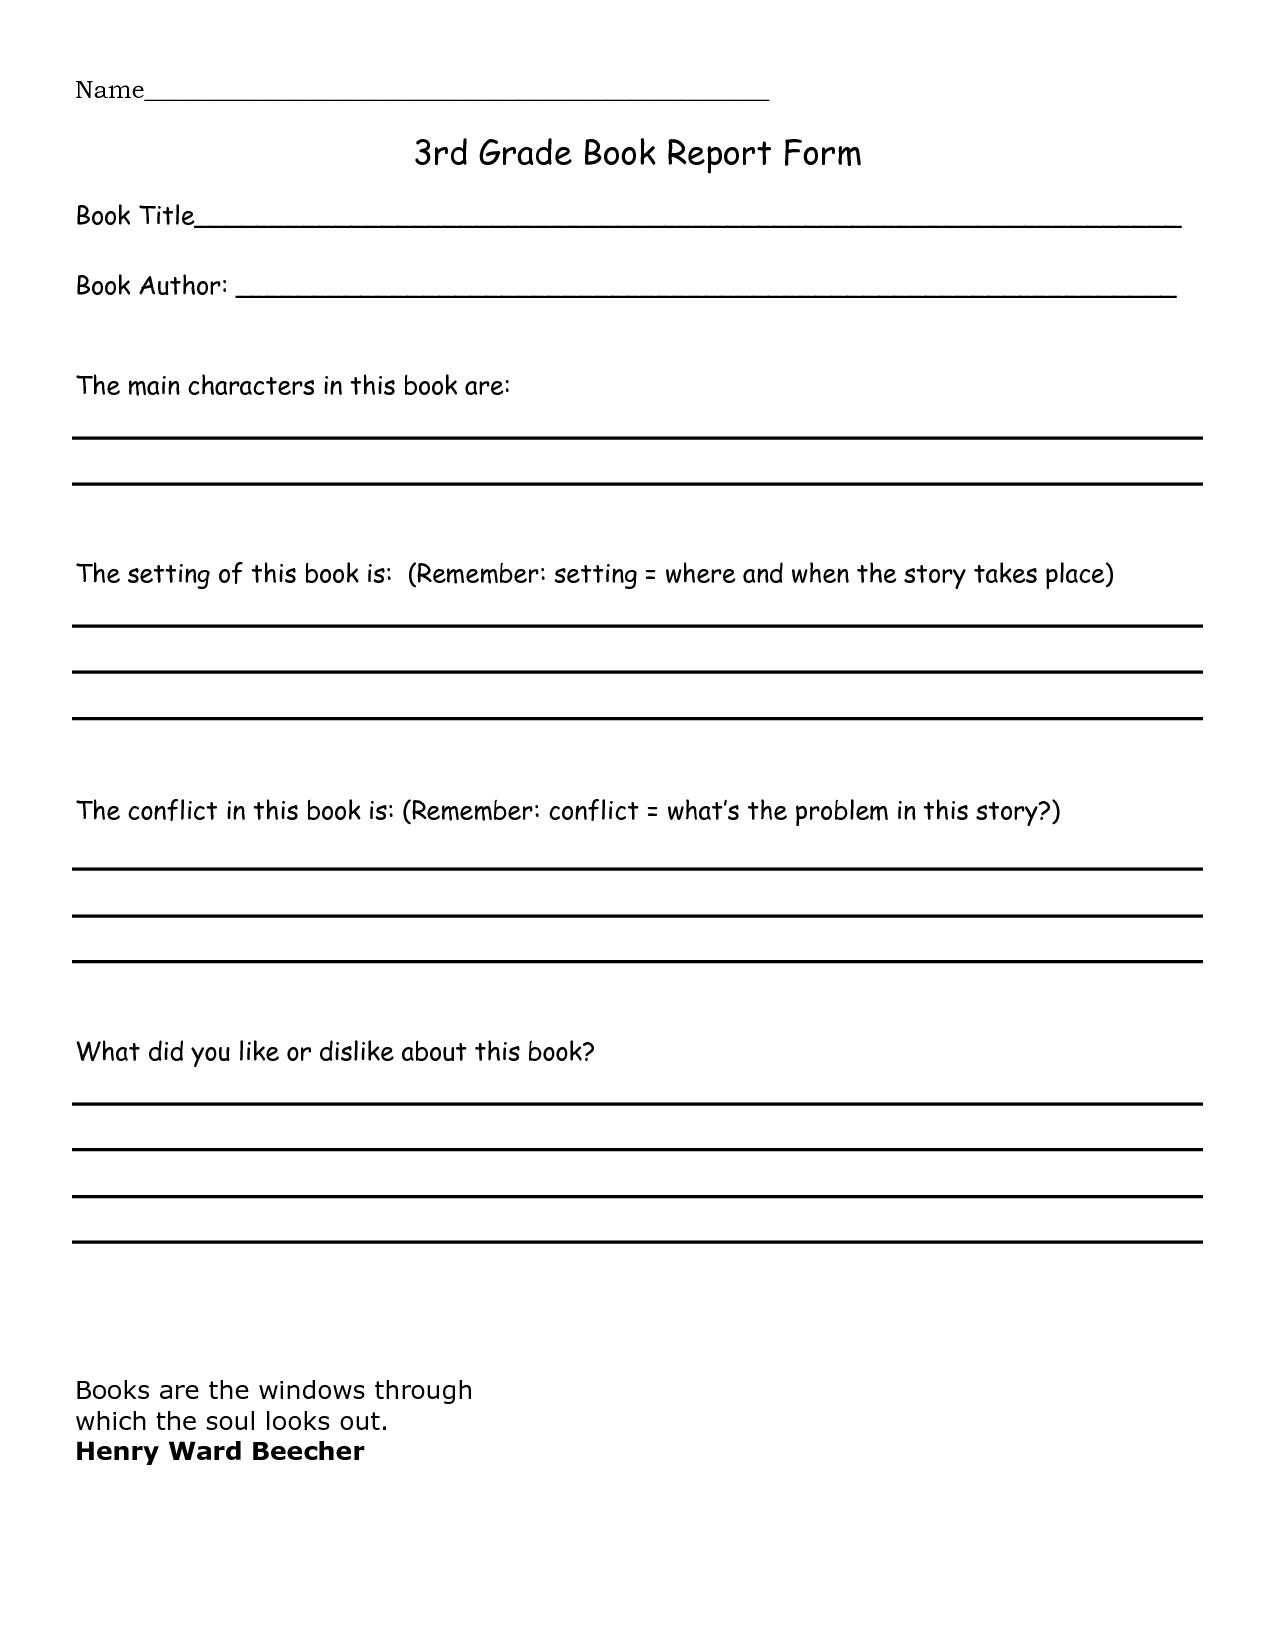 Book Report 3rd Grade Template